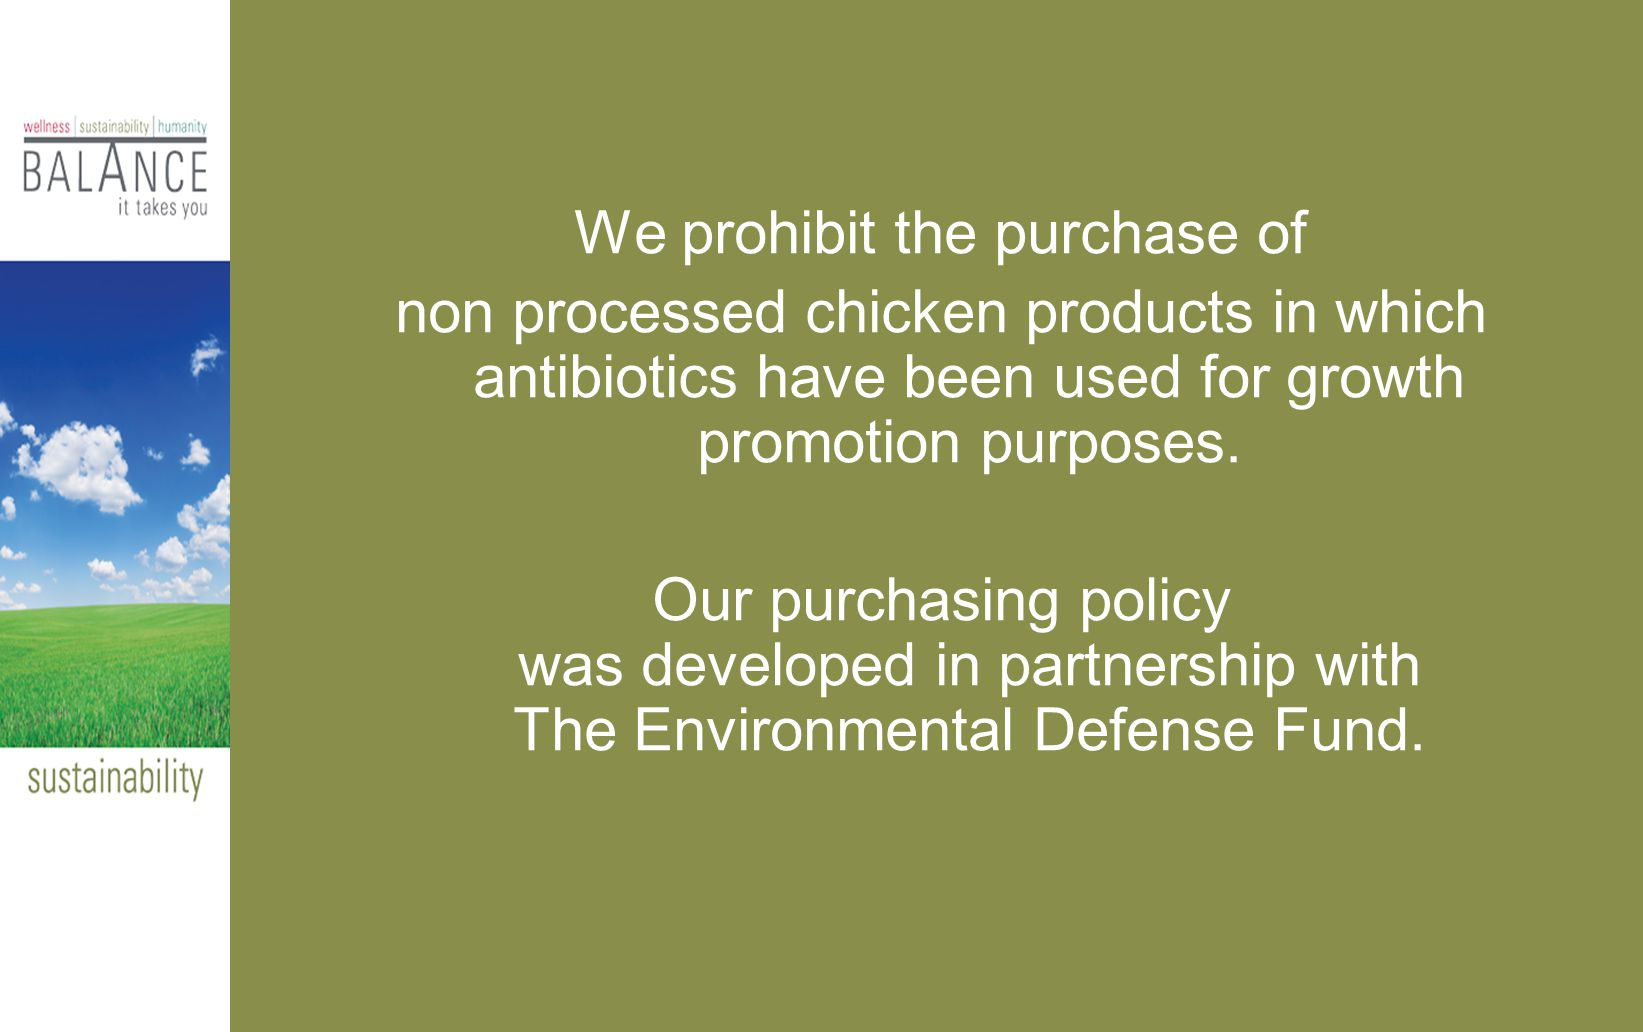 We prohibit the purchase of non processed chicken products in which antibiotics have been used for growth promotion purposes.